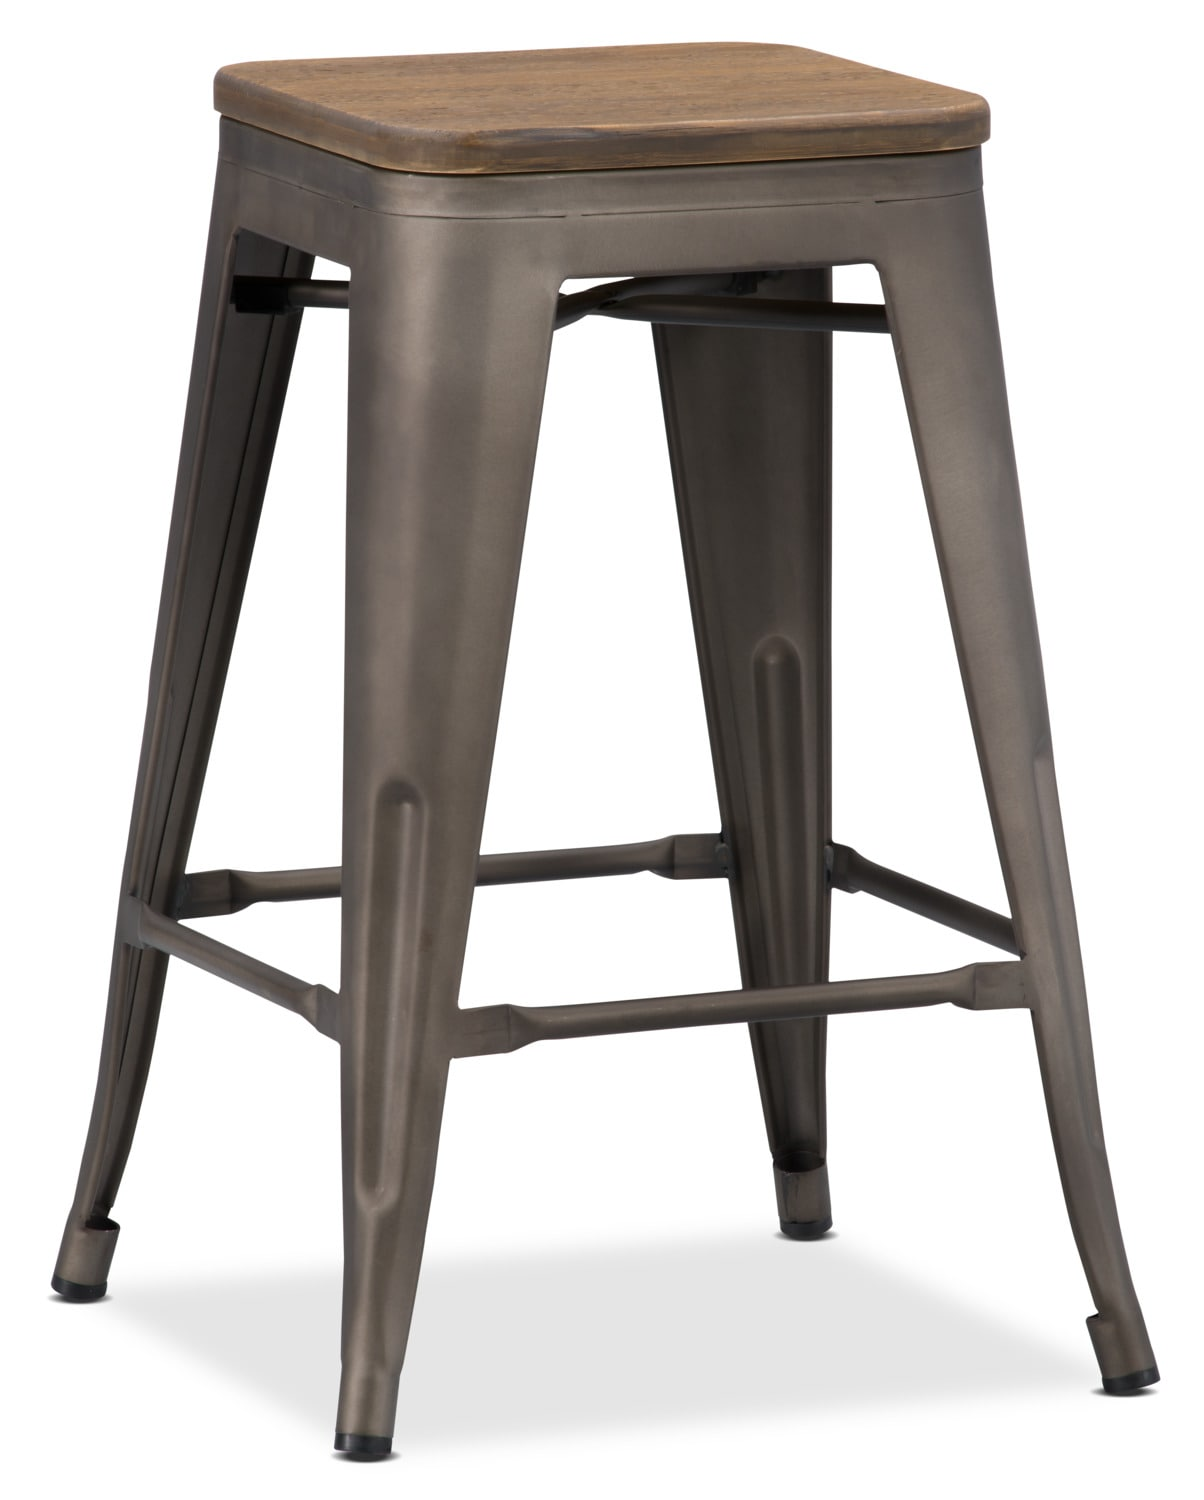 Peyton Counter-Height Dining Stool